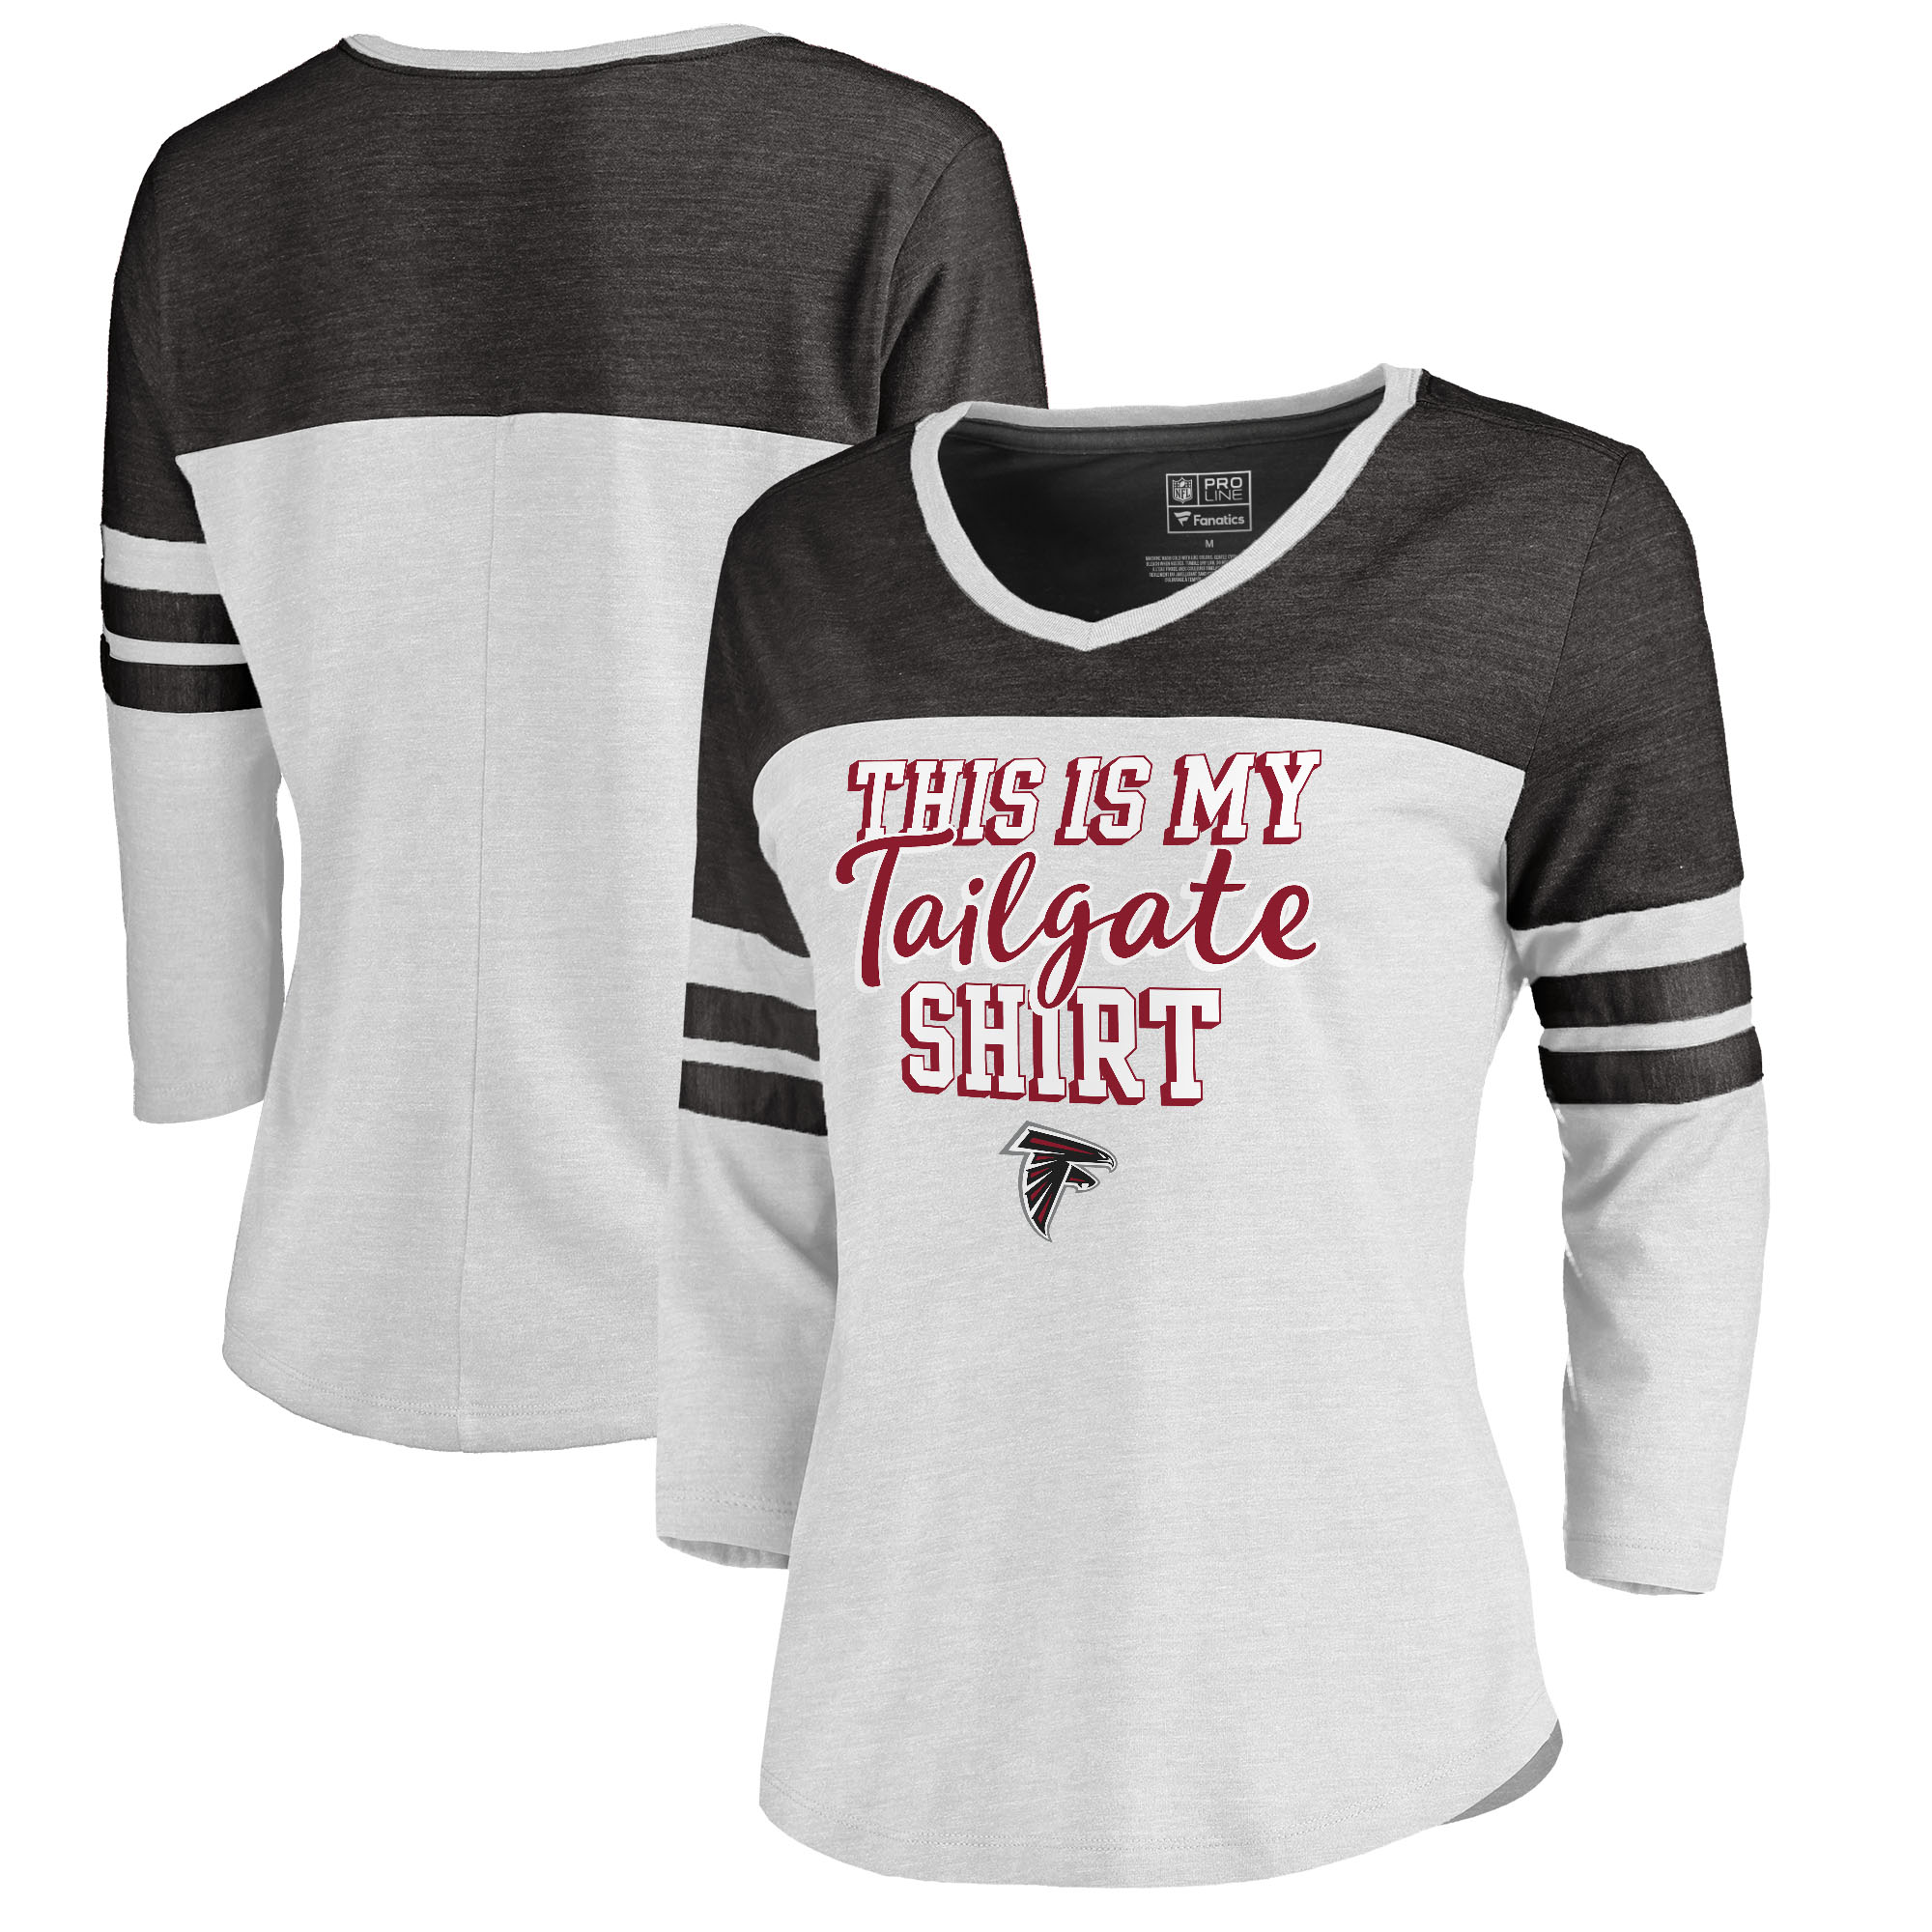 Atlanta Falcons NFL Pro Line by Fanatics Branded Women's Plus Size Air Color Block Tri-Blend 3/4-Sleeve T-Shirt - White